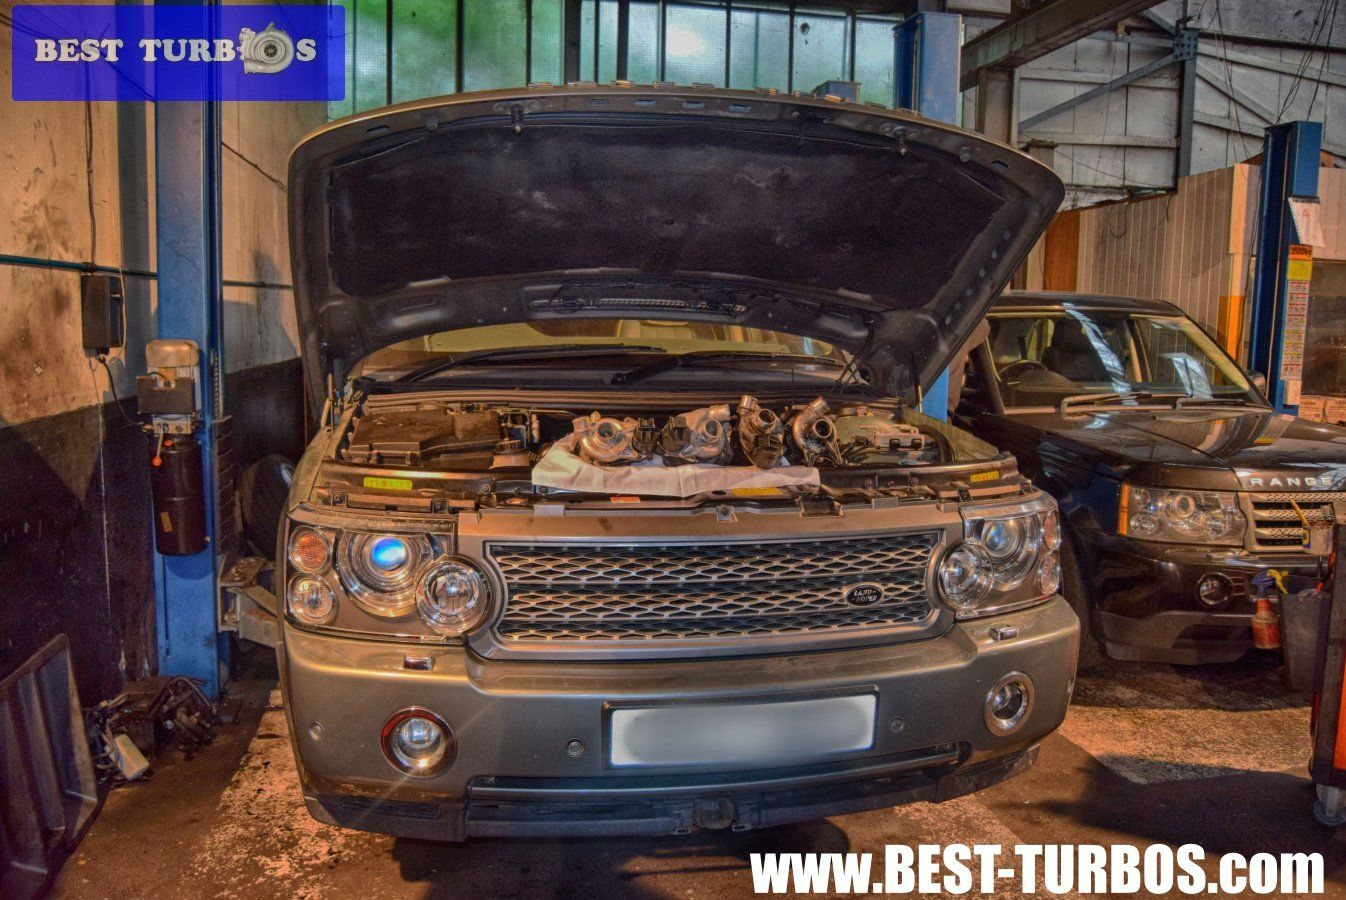 Range Rover Sport 2007 3 6 Turbo Replacement | Best Turbos